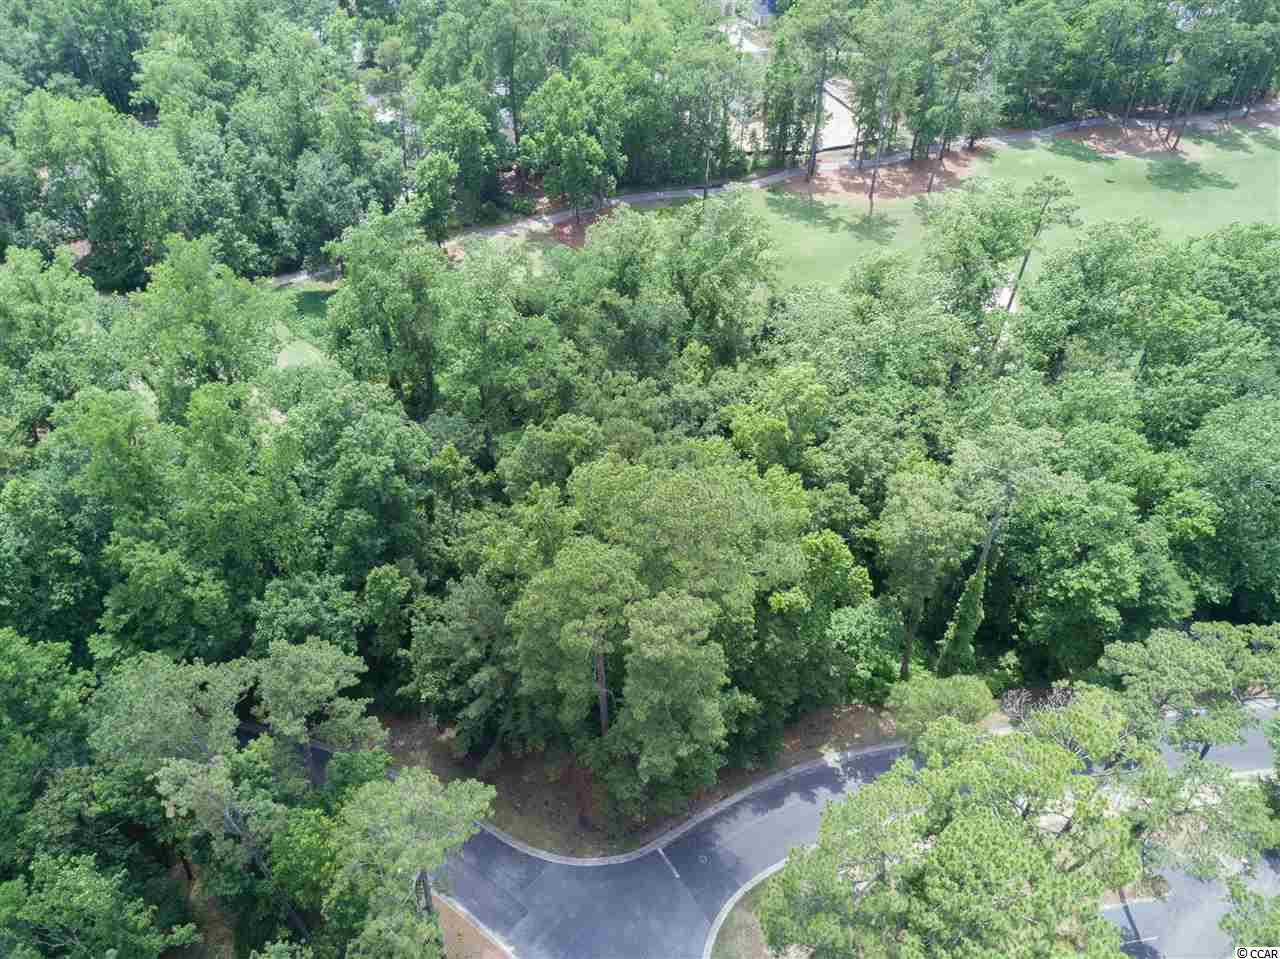 You don't want to miss out on this DOUBLE LOT located in Tidewater Plantation! This combined lot offers .64 of an acre and backs up to the 7th hole of the prestigious Tidewater Plantation Golf Course and offers great views and lots of privacy. This lot has just one tax map number and one HOA. This lot is located across from the Clubhouse and is situated on Spinnaker Dr and Lighthouse Dr. Tidewater Plantation is a gated community that offers a variety of amenities including 5 swimming pools, a fitness and exercise center, tennis courts, an amenity center, a restaurant, a beach house cabana, and a golf course. Schedule a time to see this lot today!